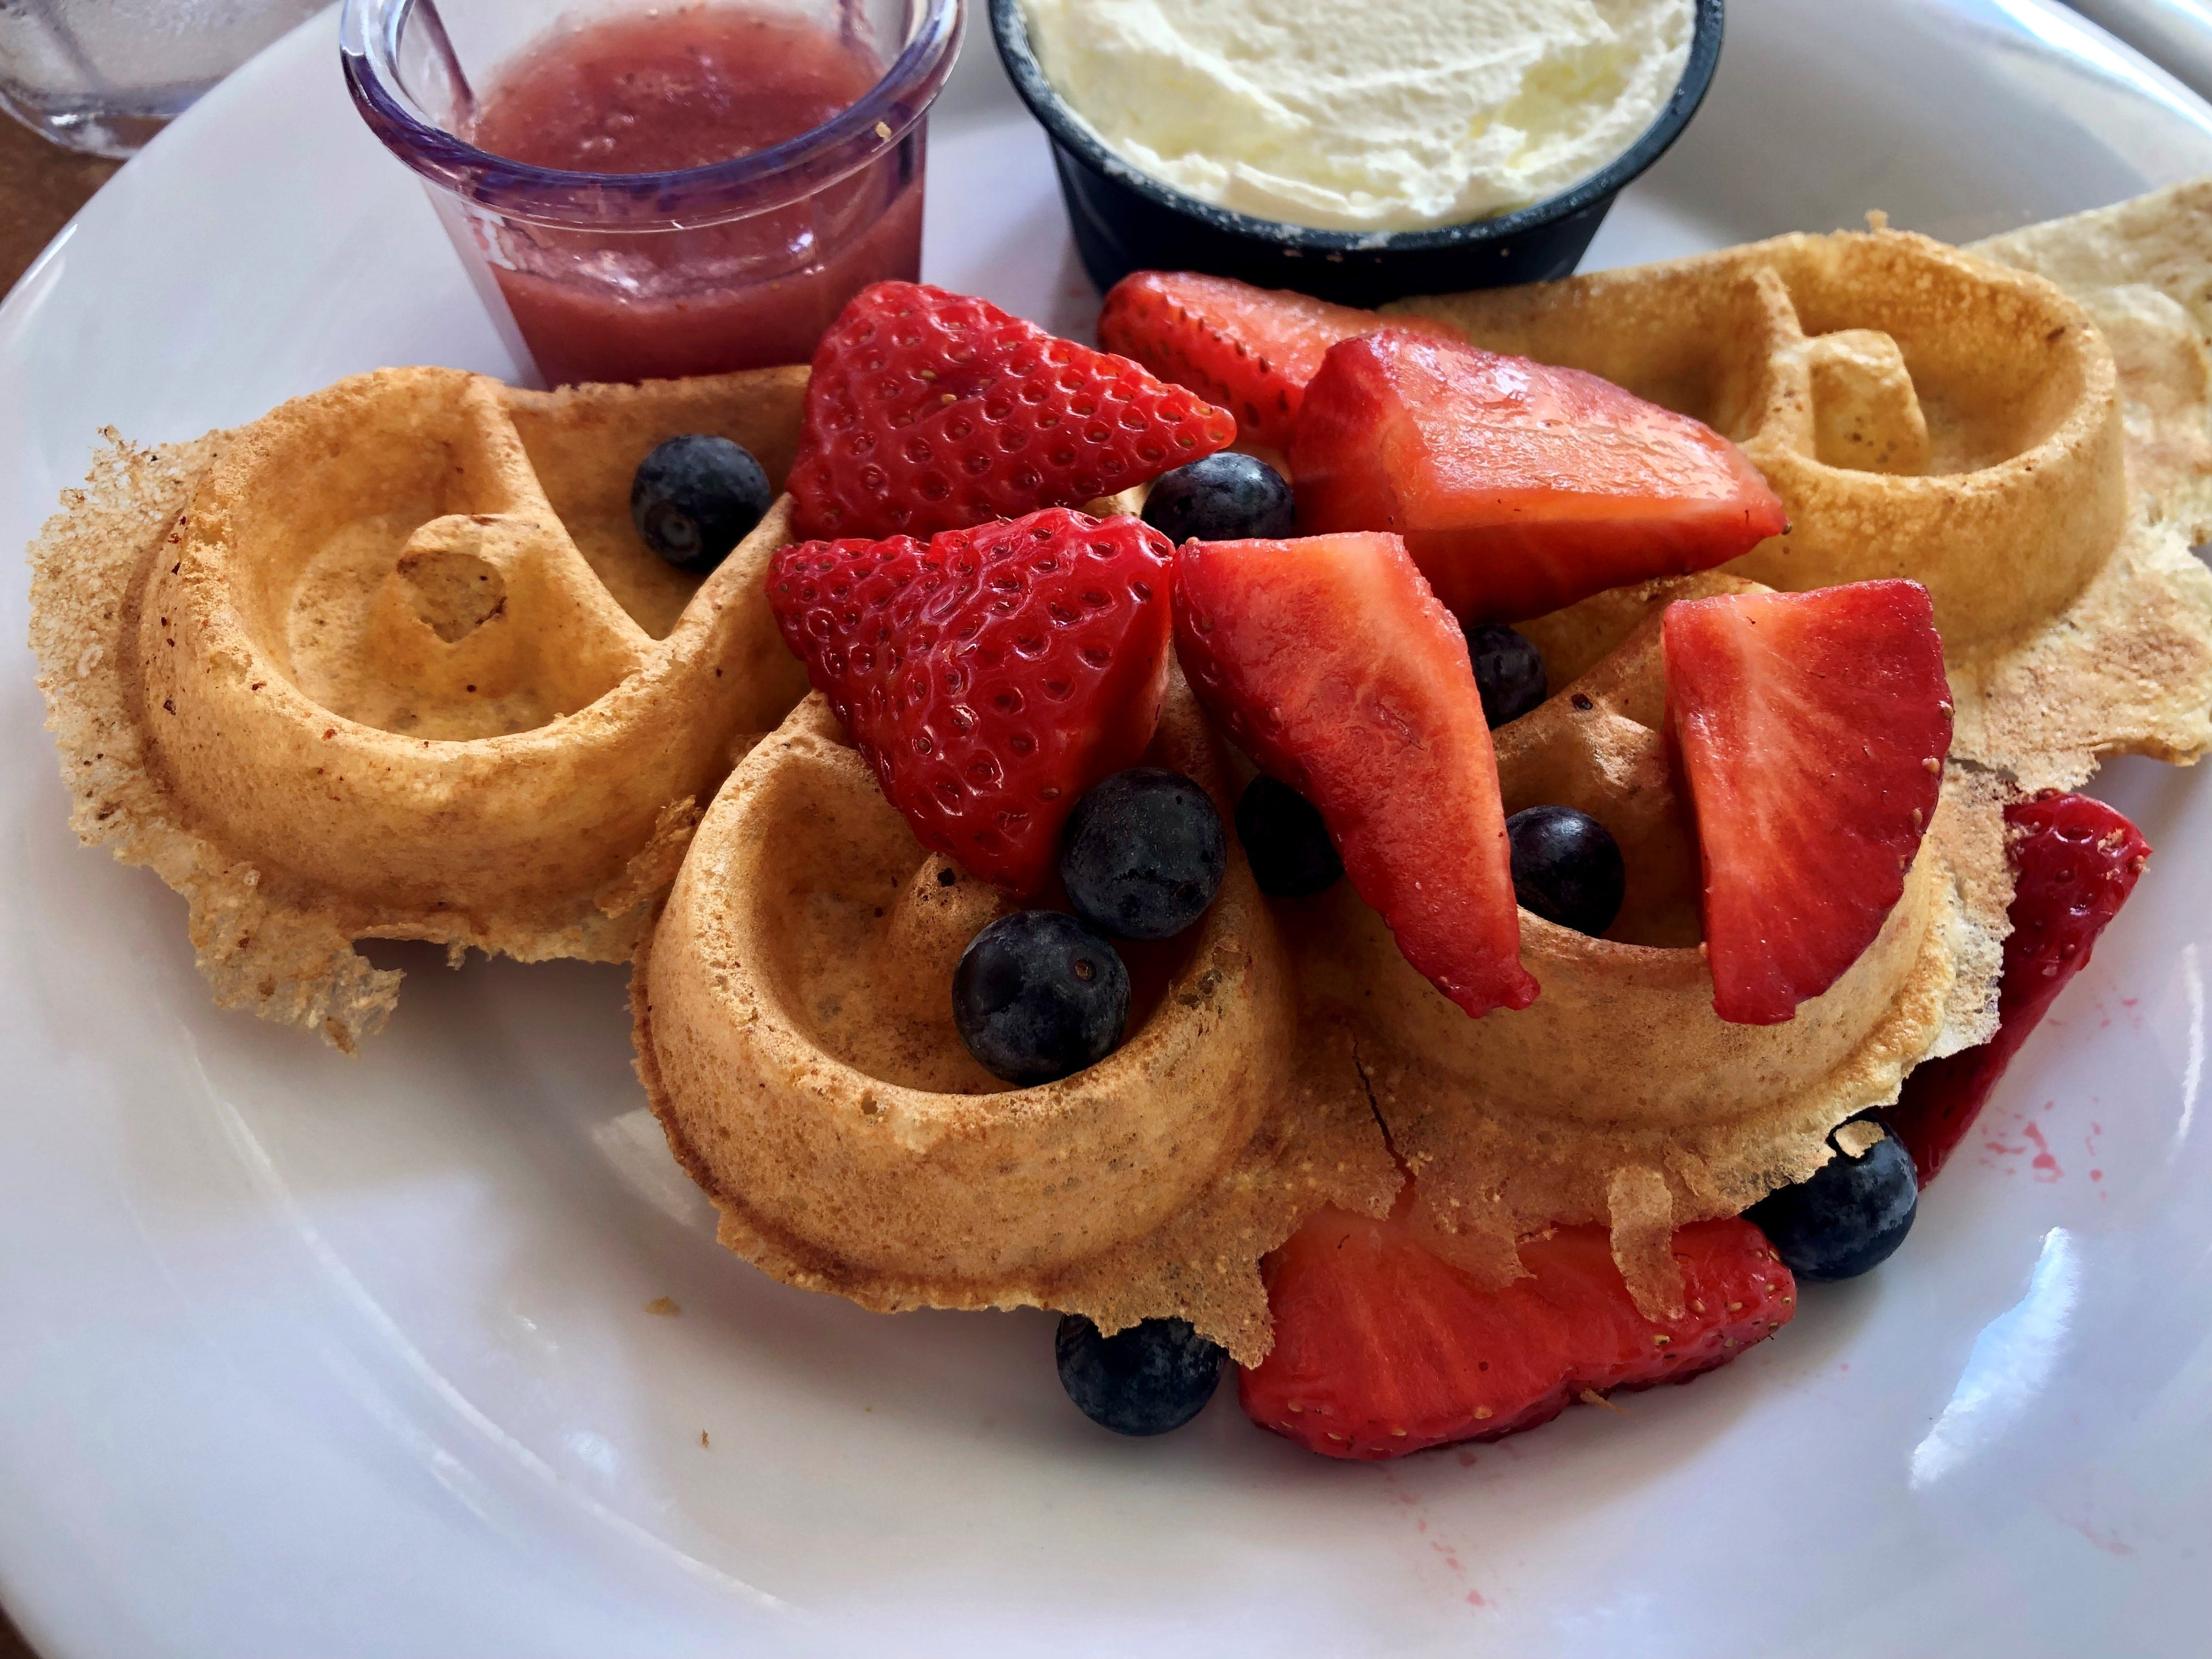 Skillets' Belgian waffle is made from a house batter that ferments over the course of three days.